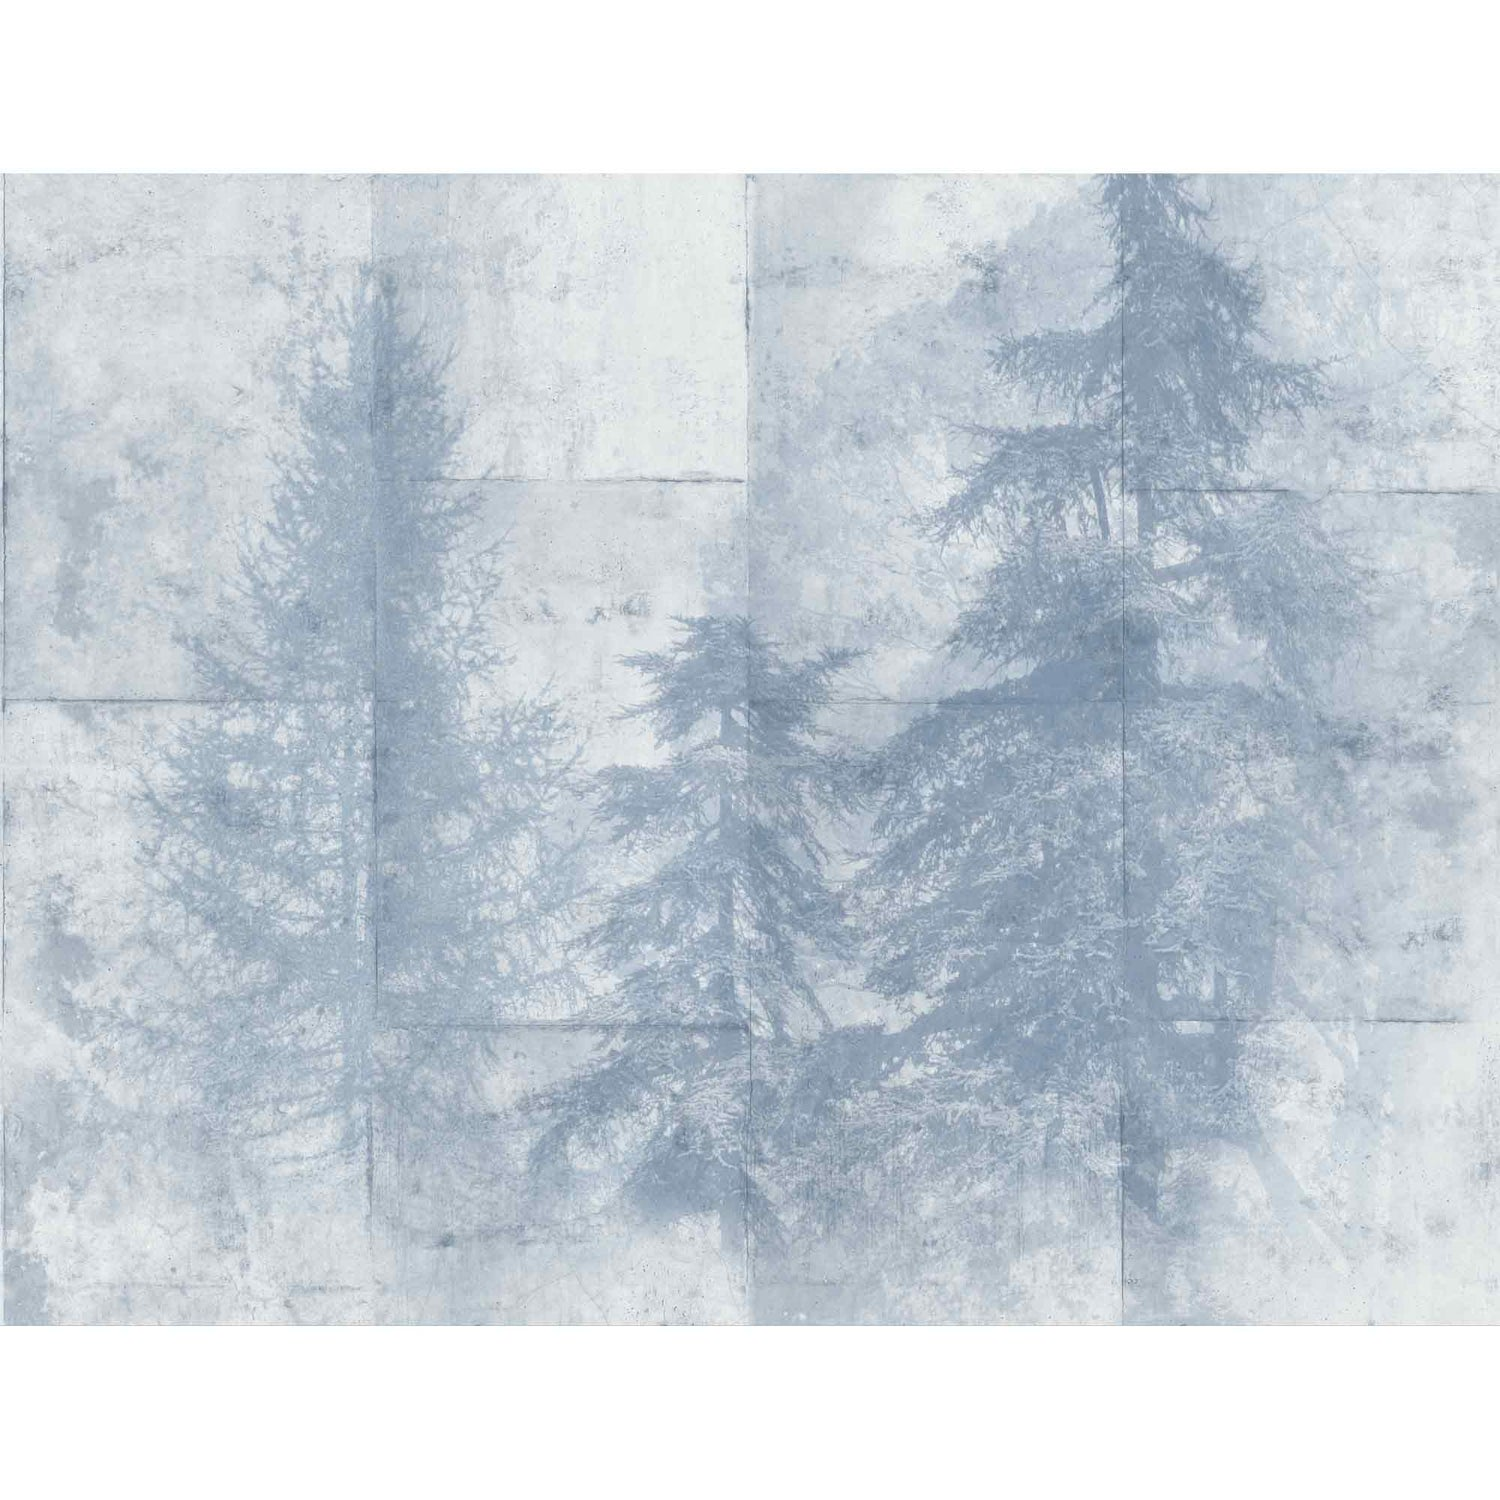 Entwistle Mist Blue Wallpaper Wall Mural